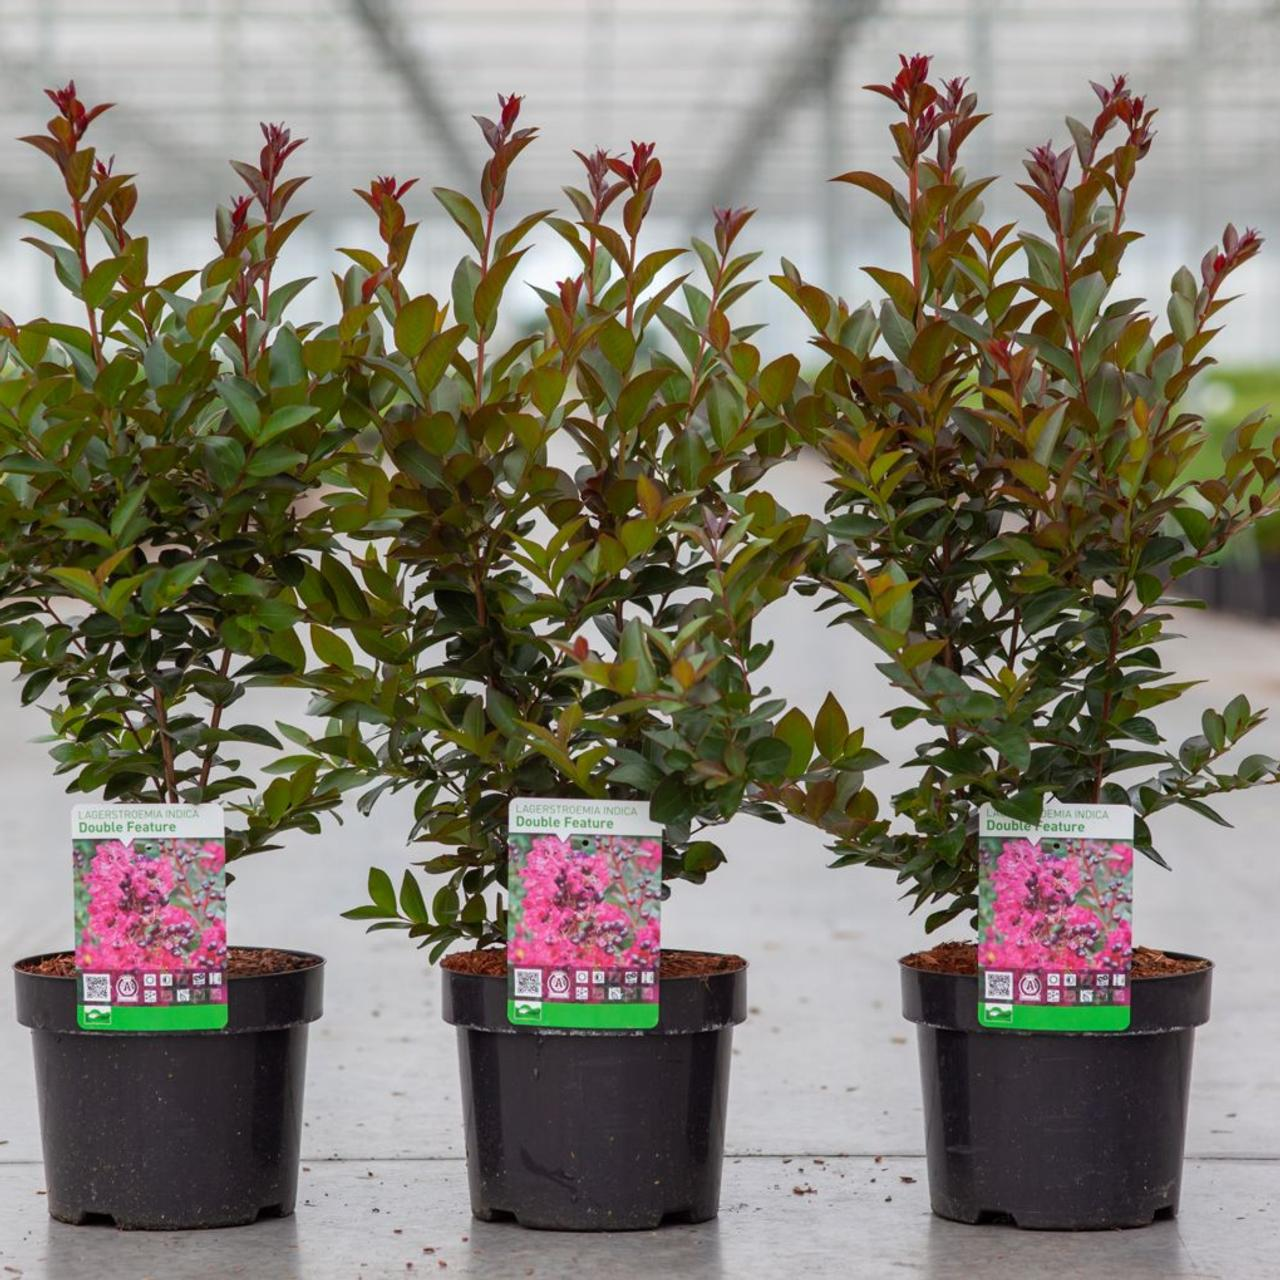 Lagerstroemia indica 'Double Feature' plant